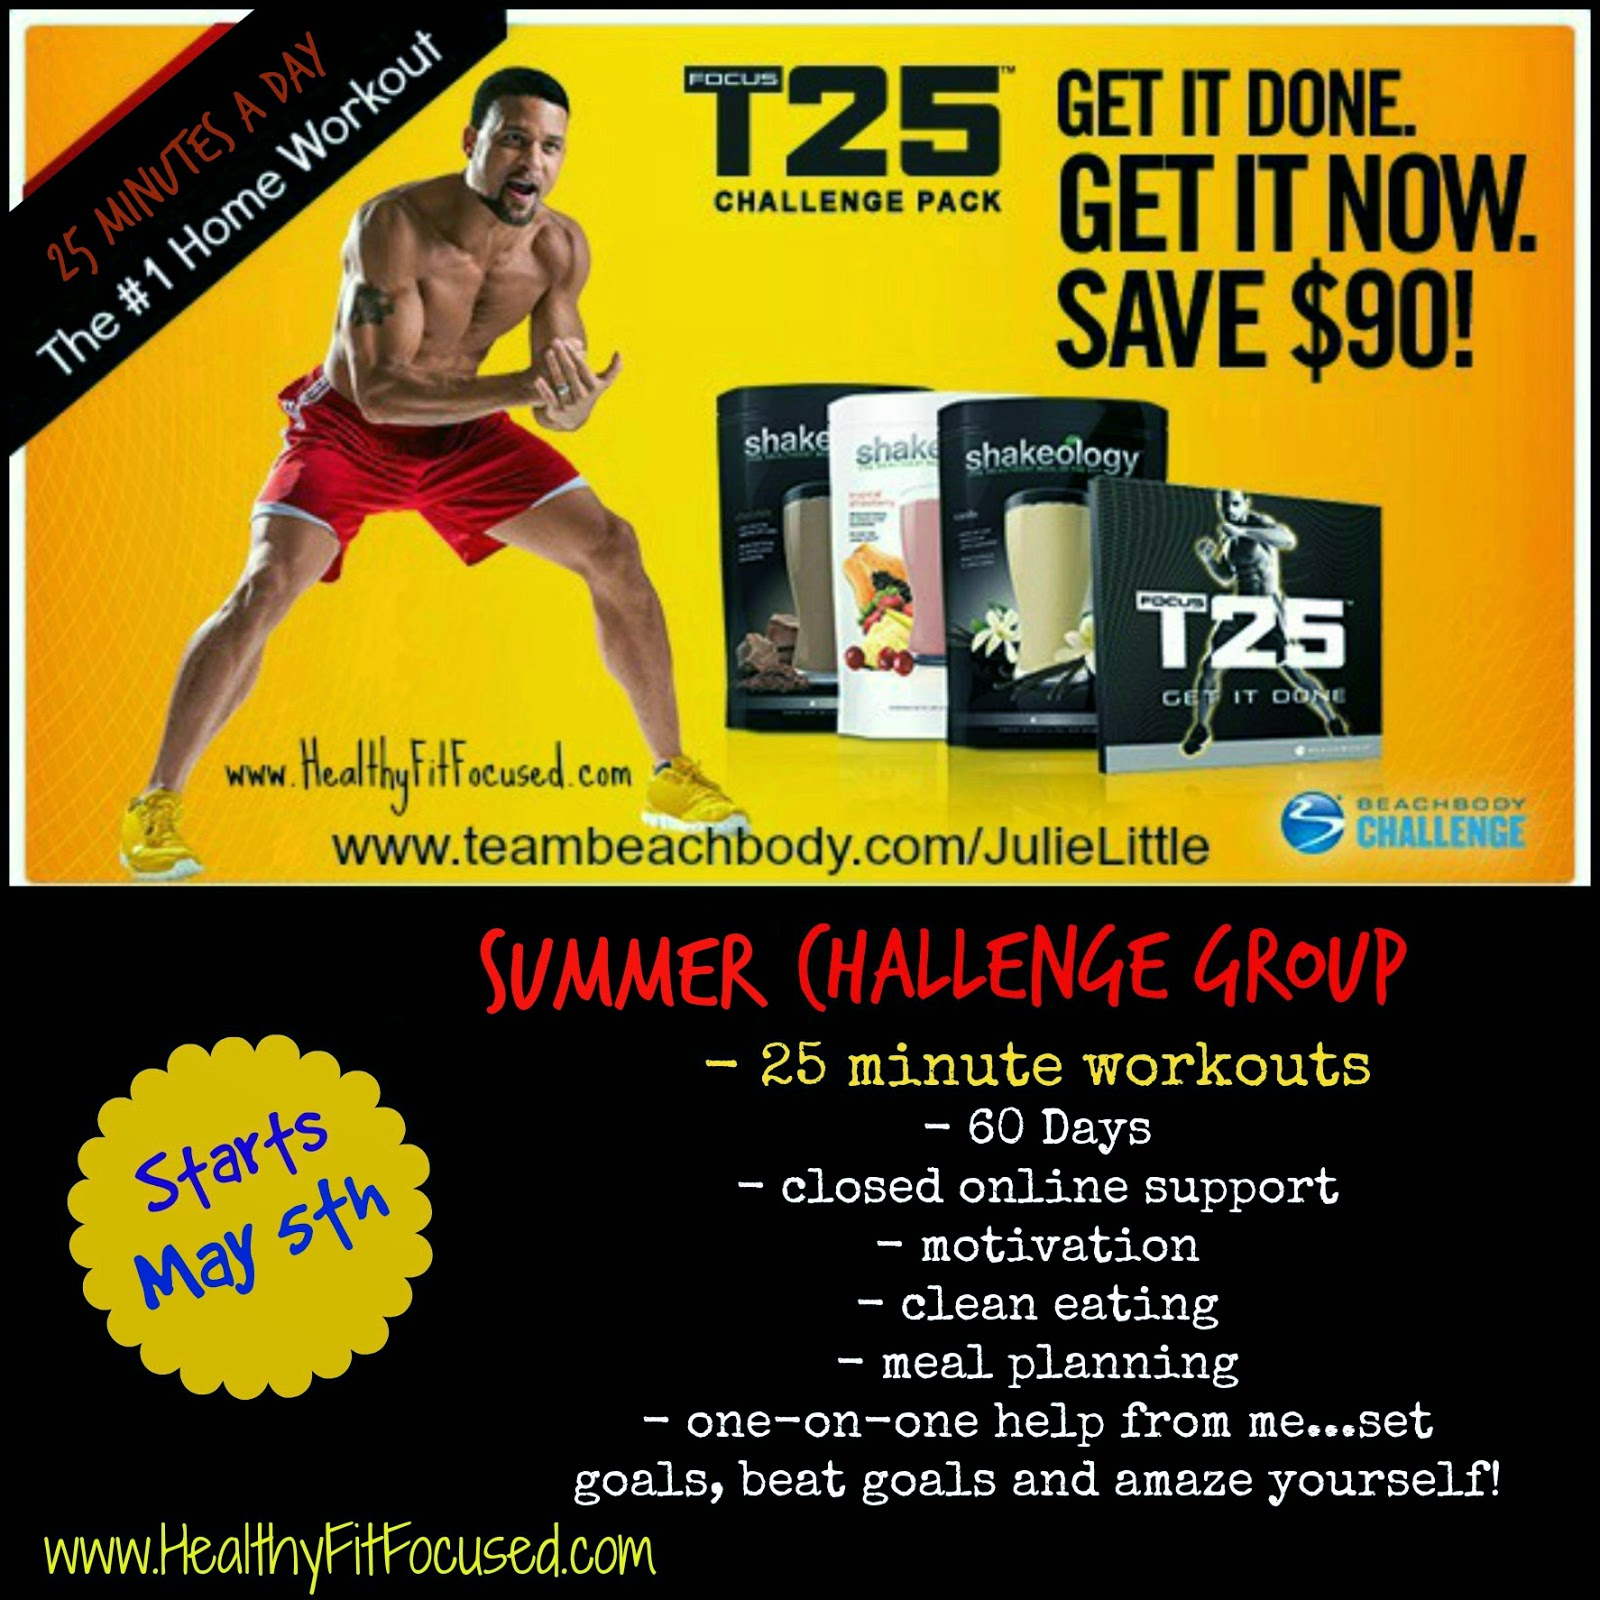 T25 Challenge Pack, summer challenge group, www.HealthyFitFocused.com